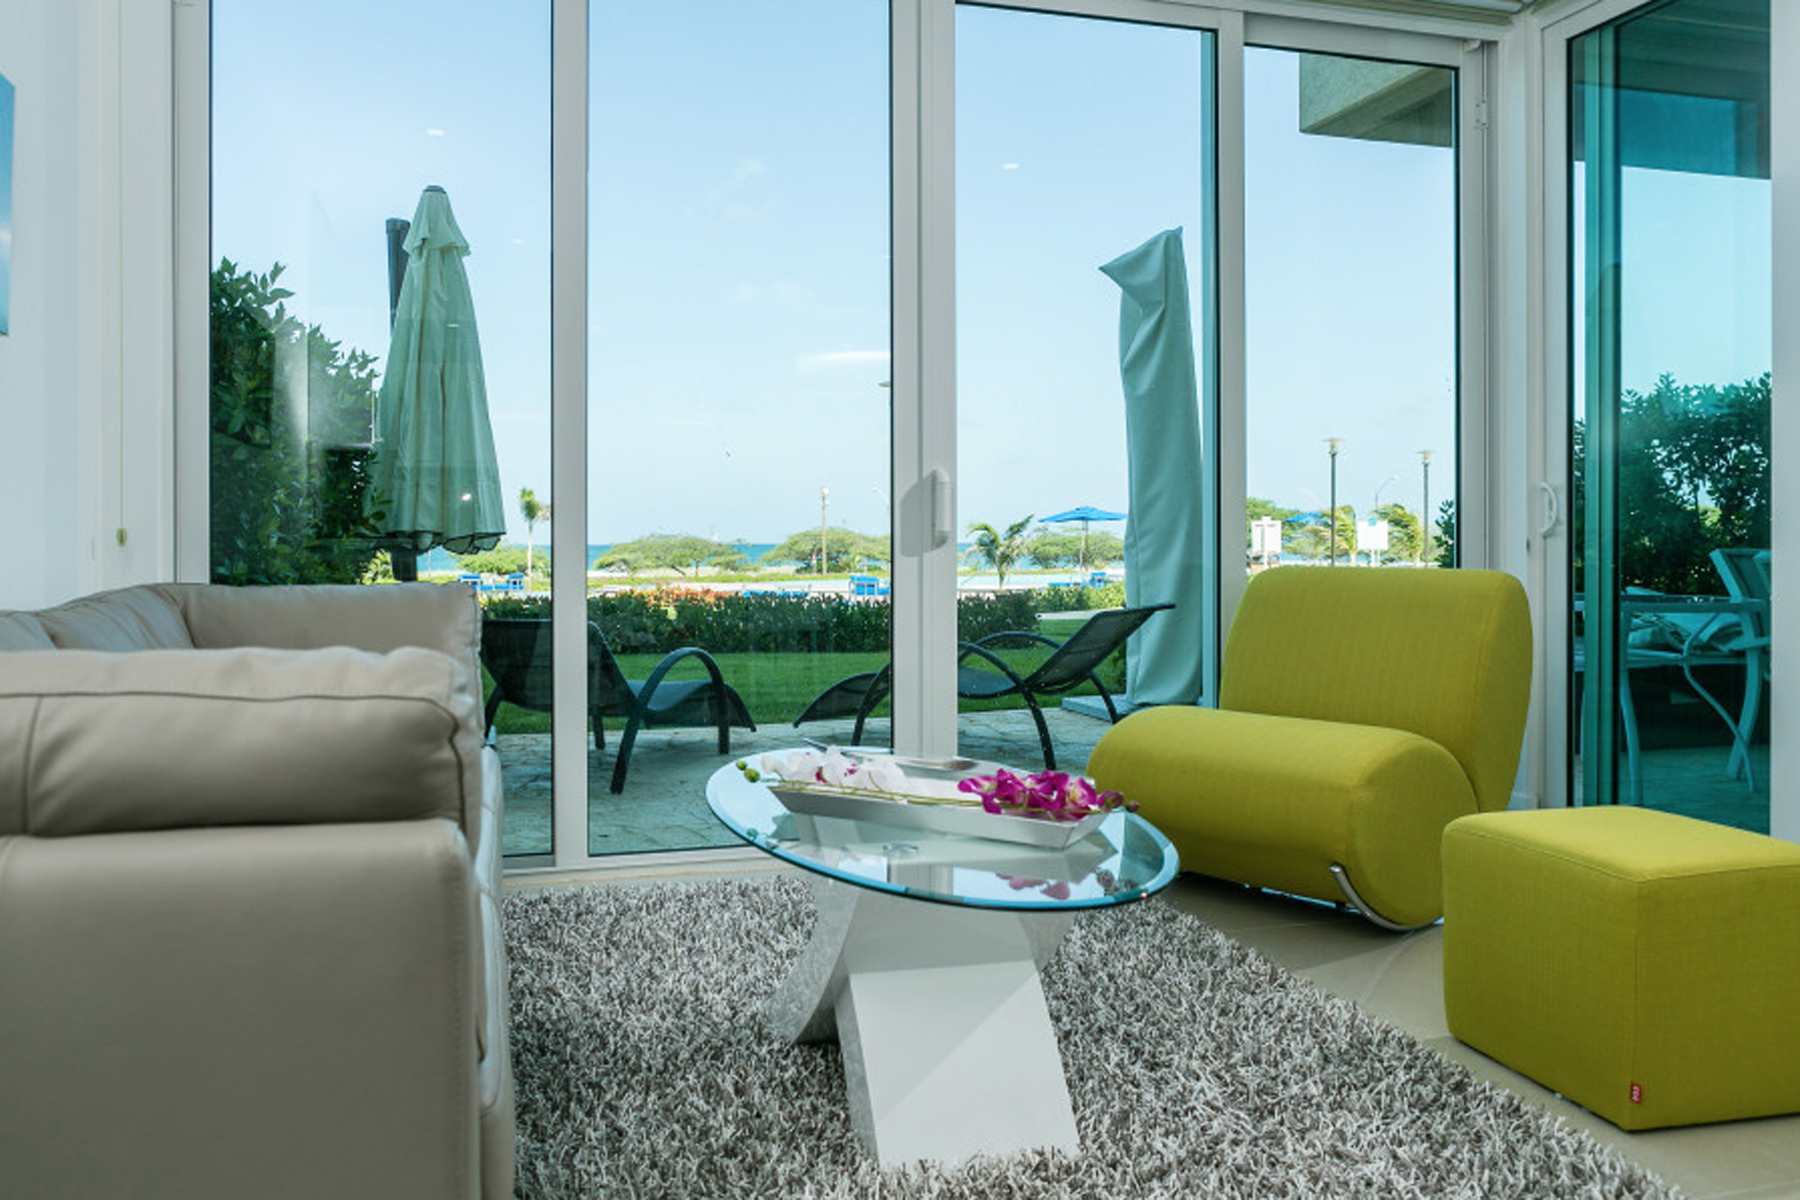 Additional photo for property listing at Azure Residences 2 bedroom Eagle Beach, Aruba Aruba